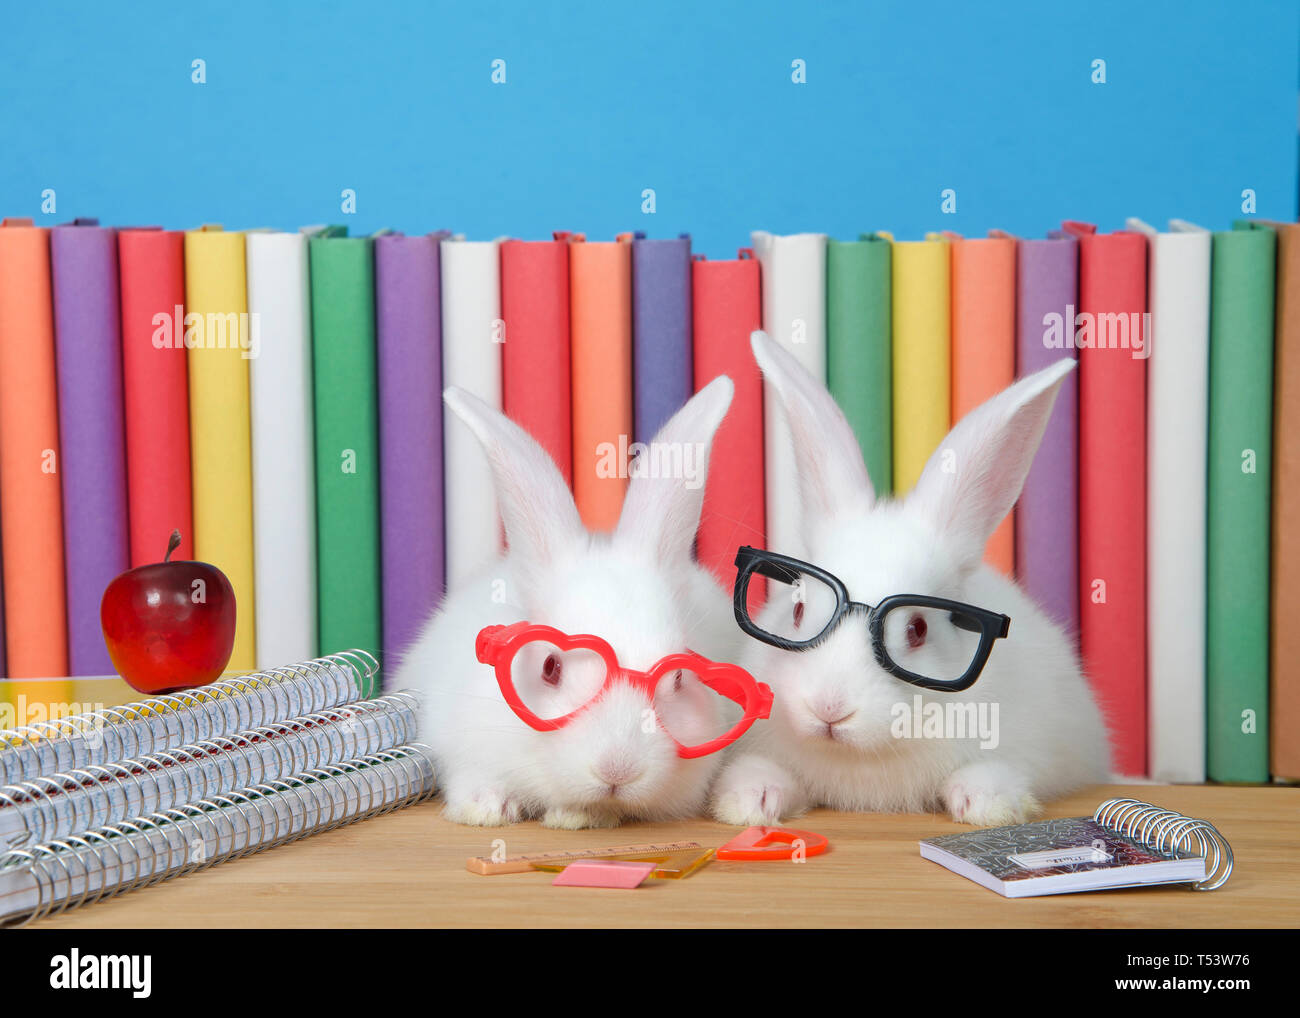 Two adorable white albino baby bunny rabbits wearing geeky glasses sitting at a wood desk with spiral bound notebooks, math supplies and a tiny red ap - Stock Image